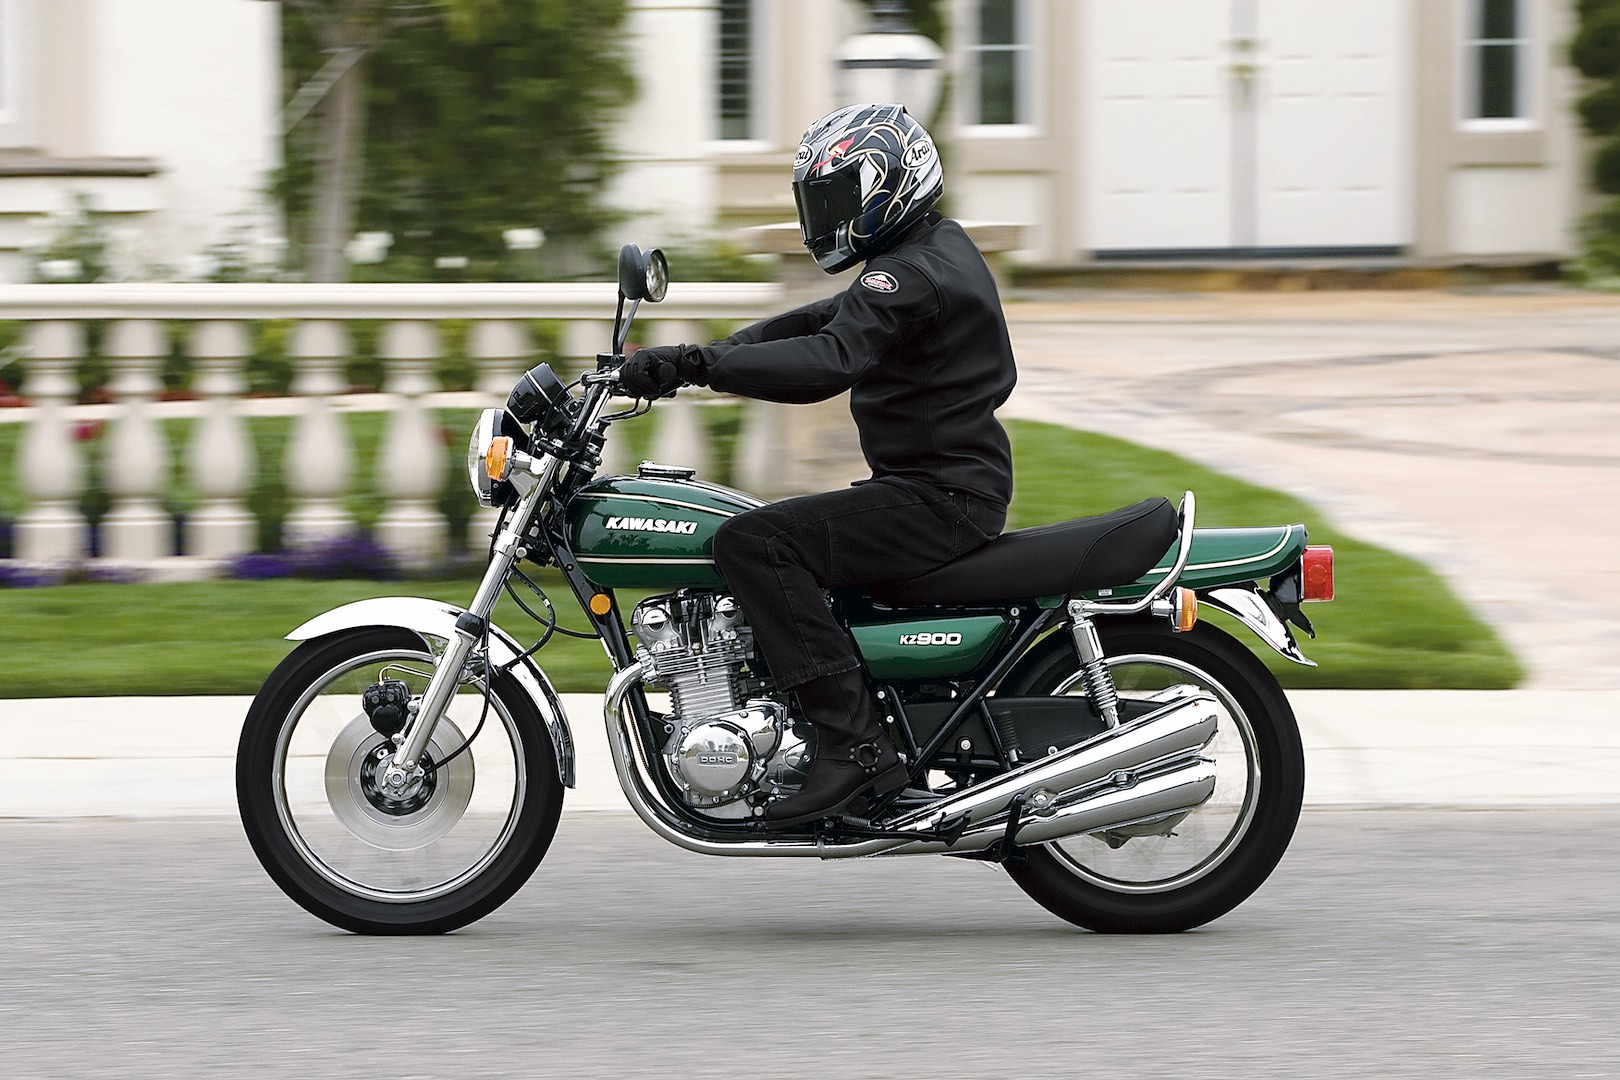 hight resolution of post mayhem teardowns at kawasaki s california outpost revealed the z1 was good to go kawasaki s reinvigorated efforts were about to pay off